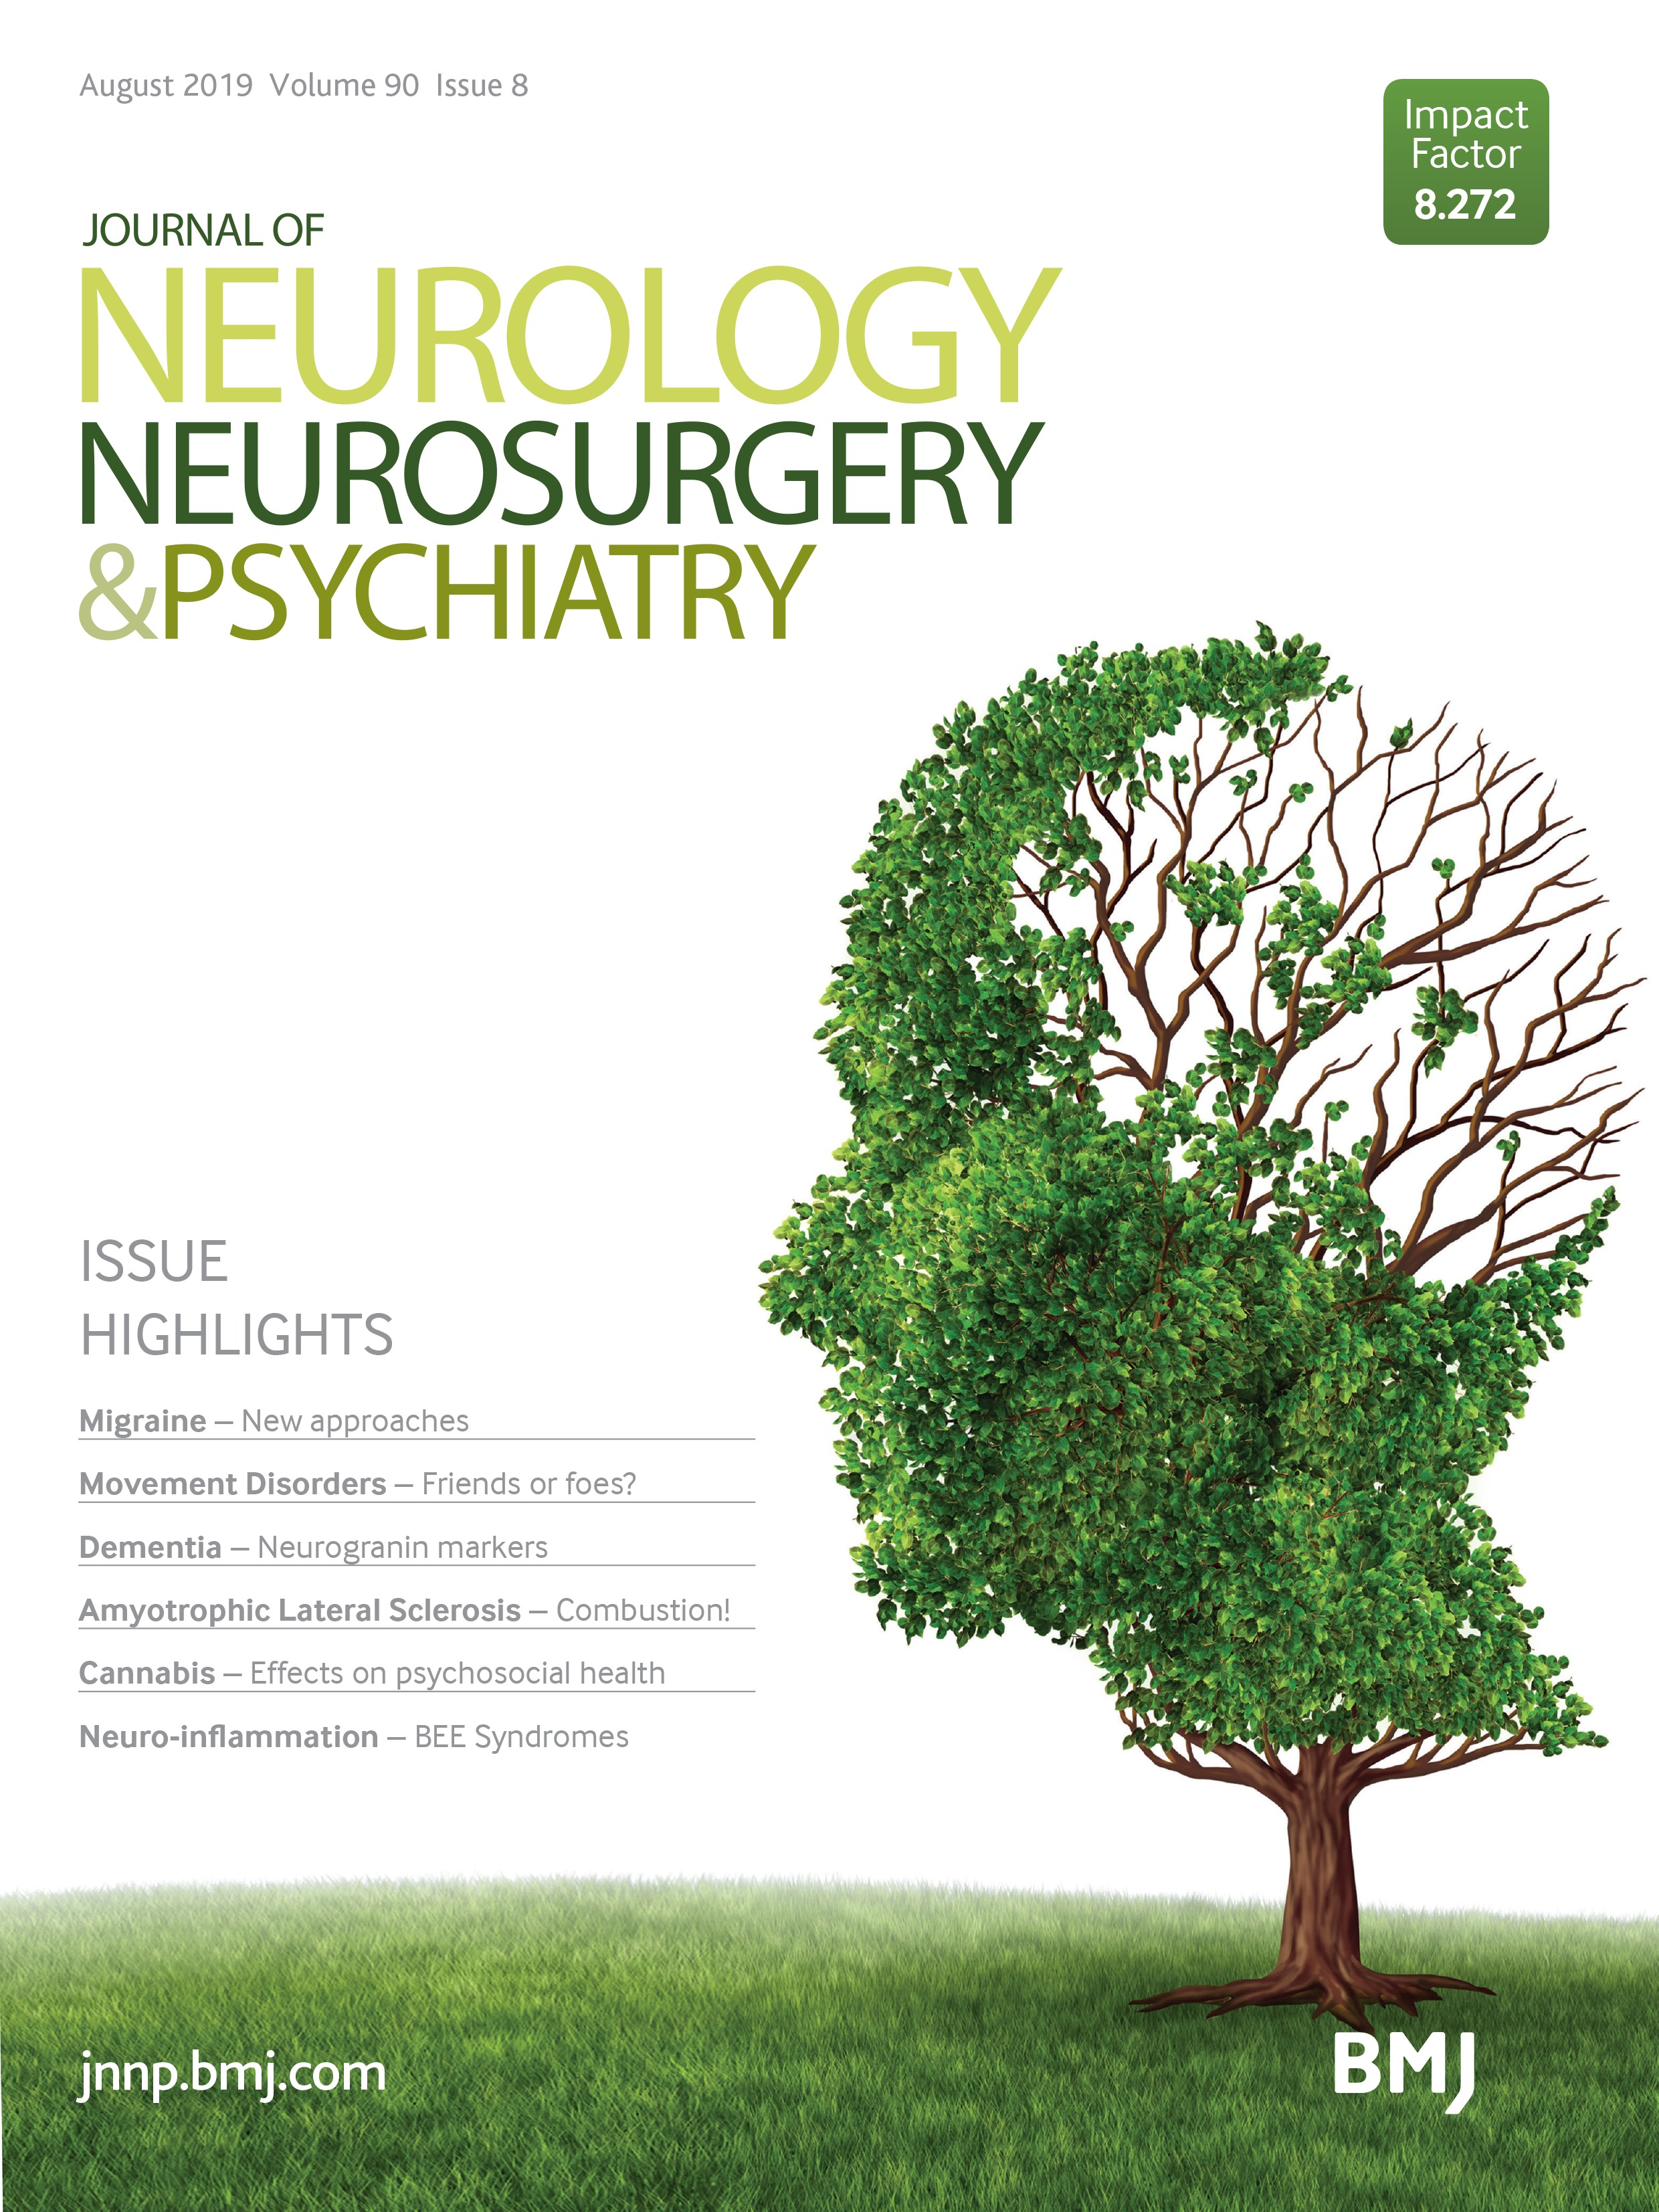 Table of contents | Journal of Neurology, Neurosurgery & Psychiatry